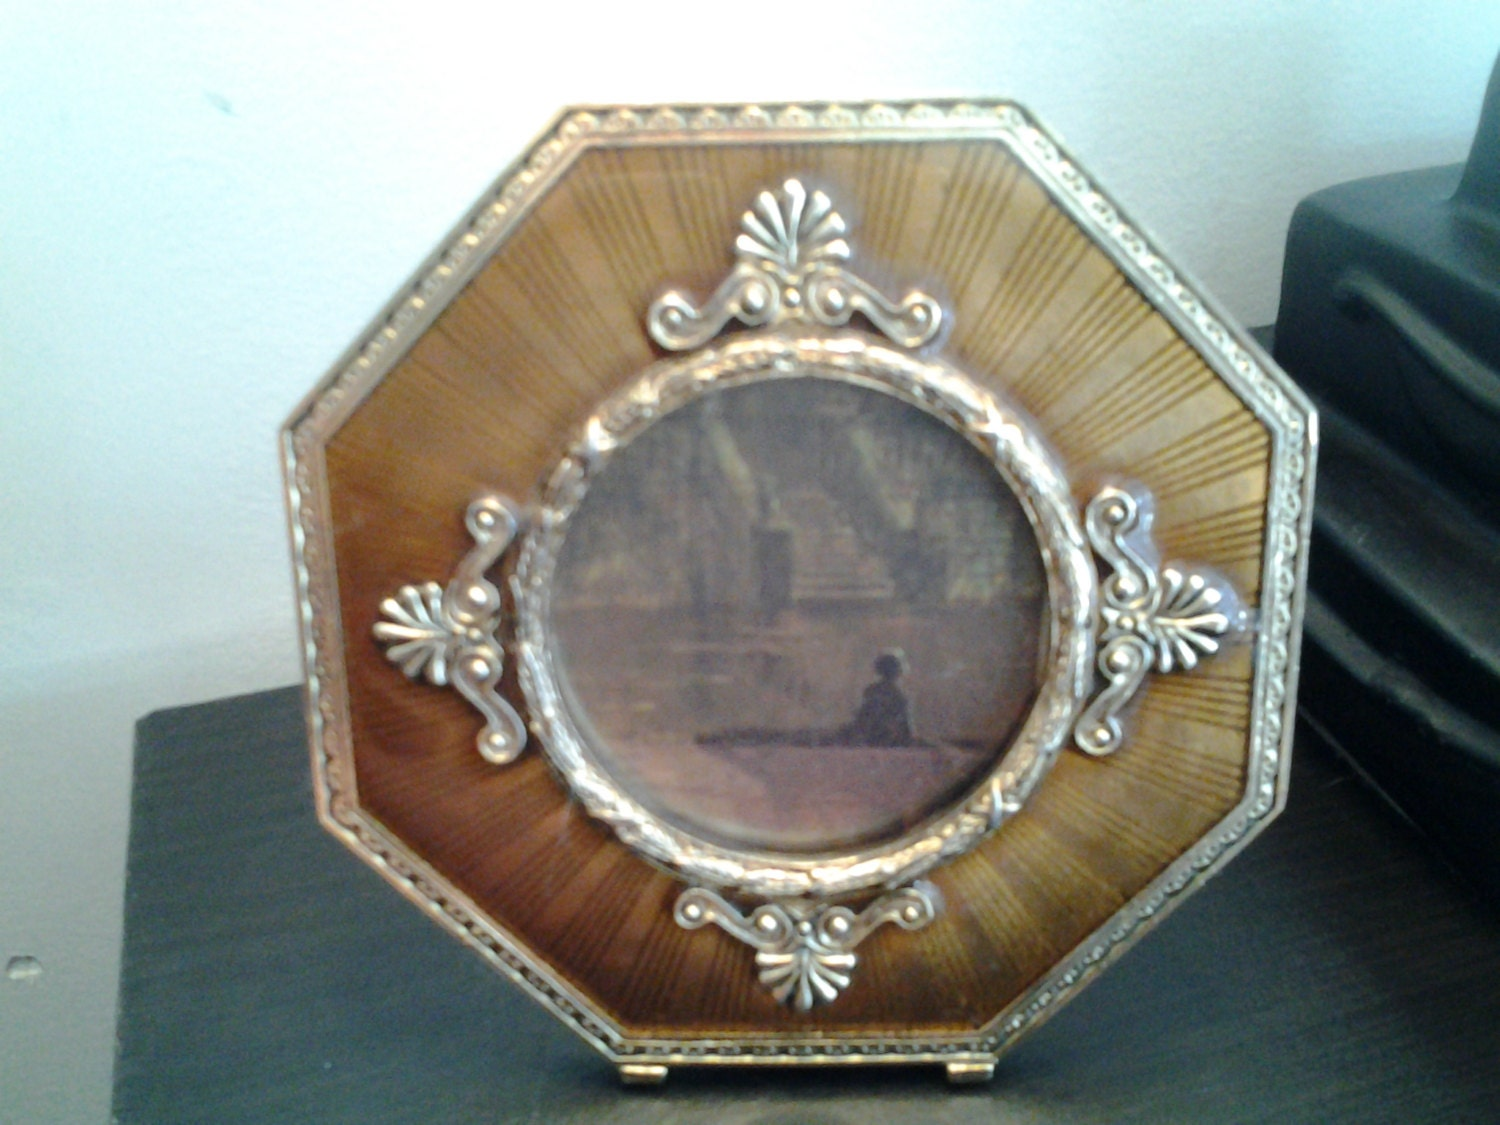 Vintage Golden Picture Frame From Thejunkemporium On Etsy